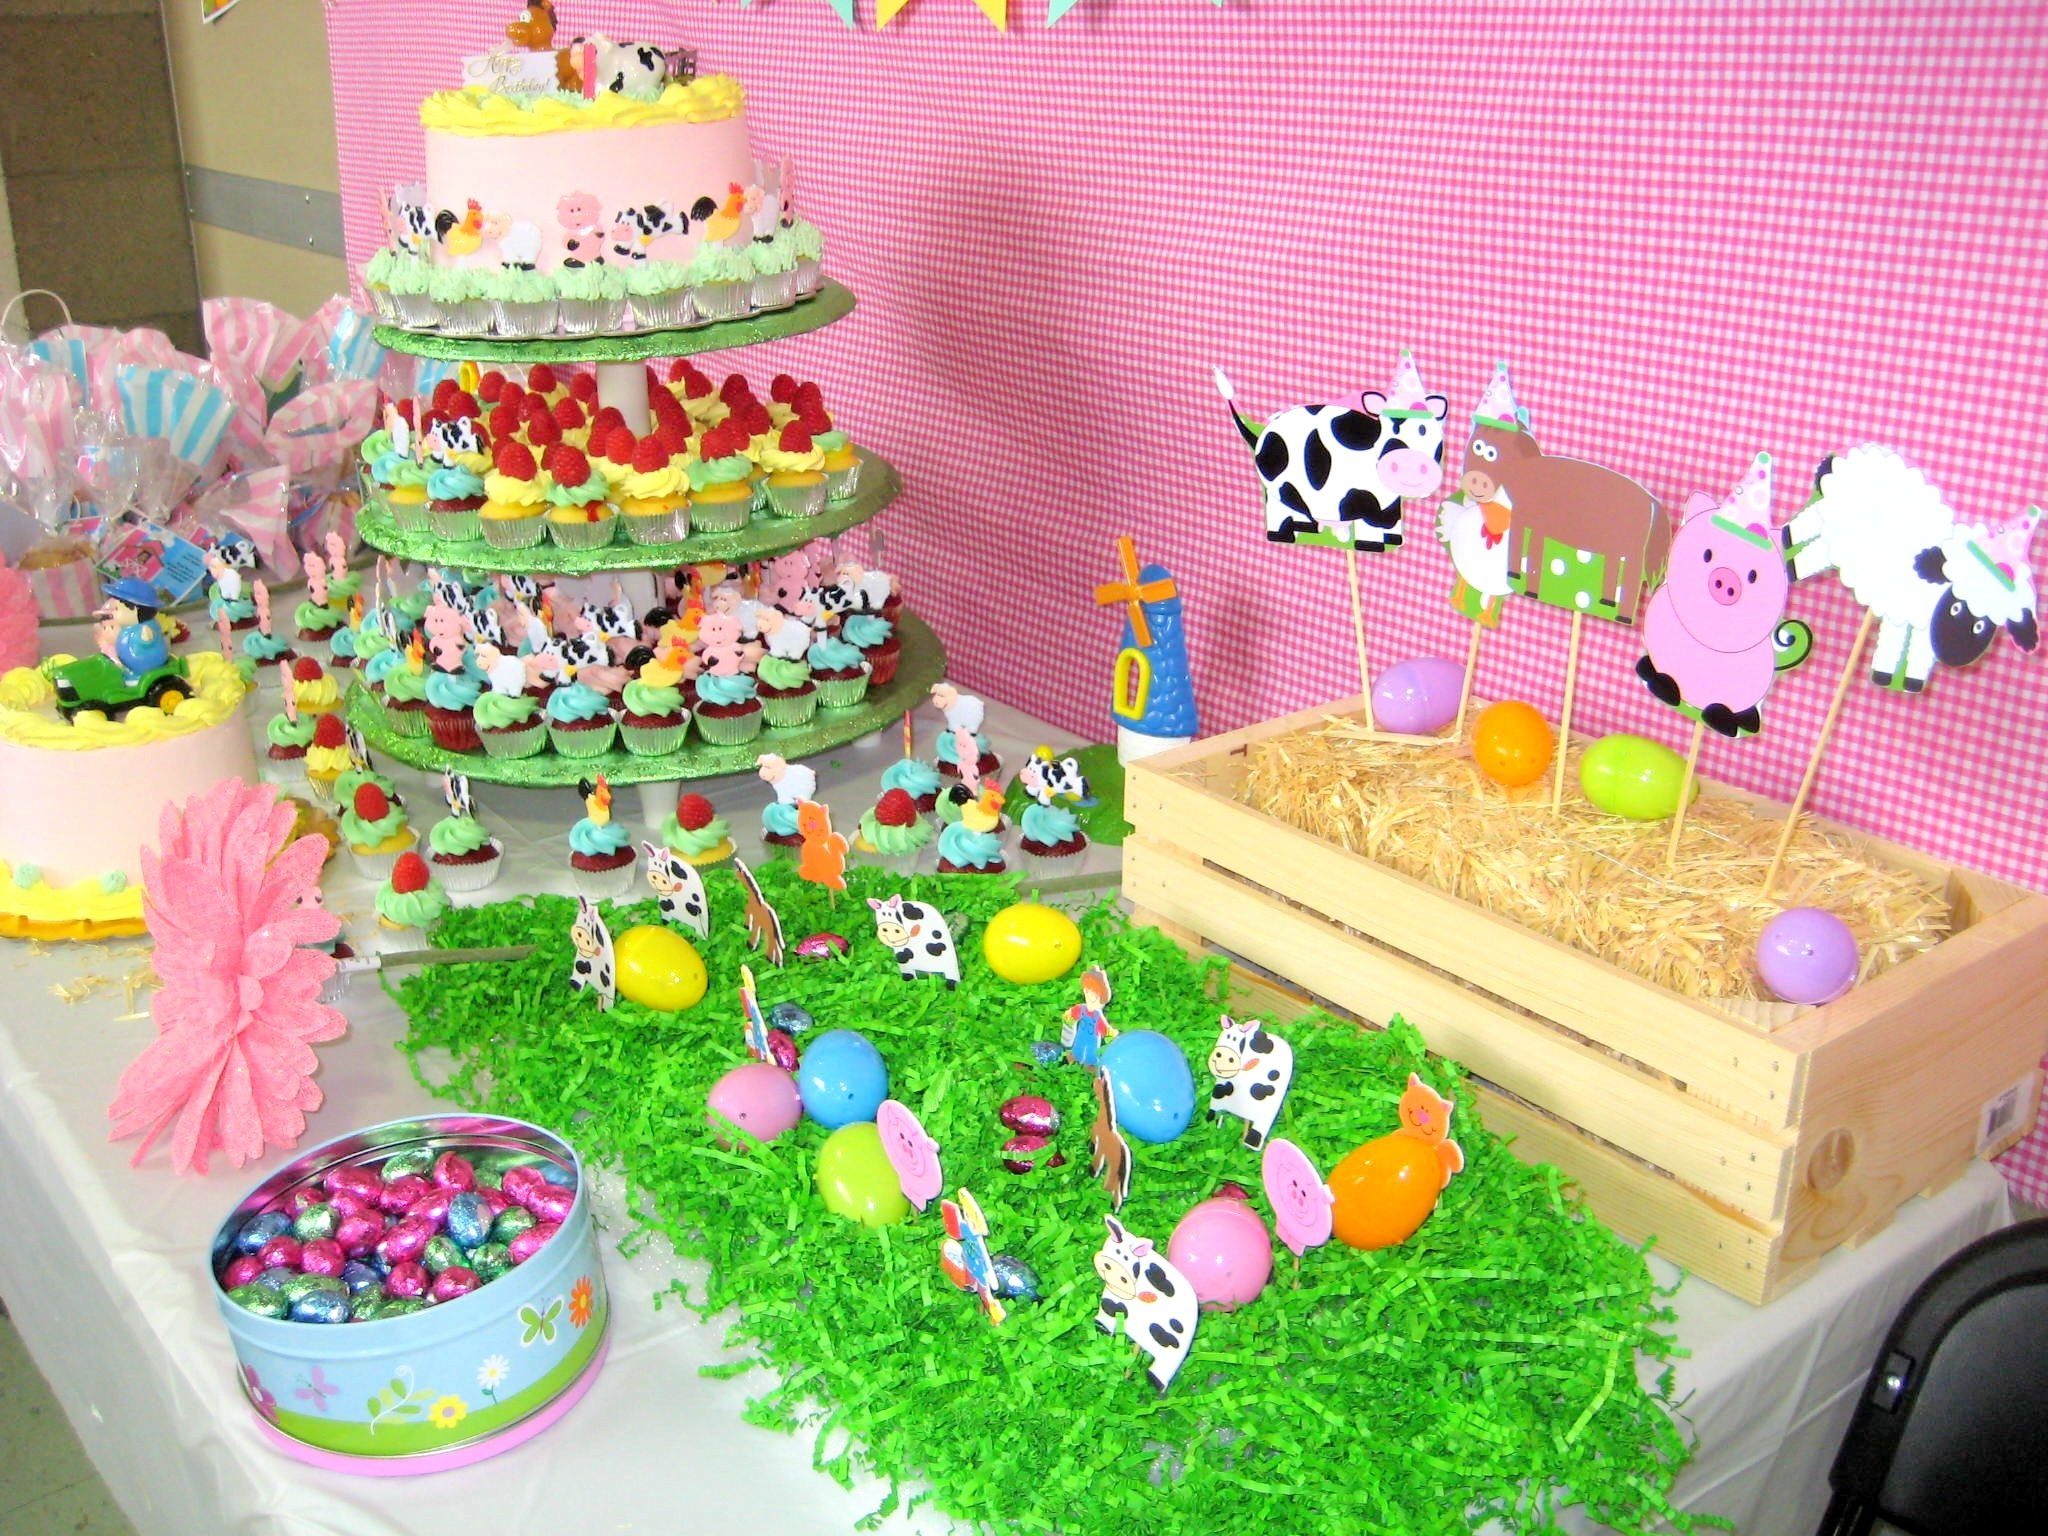 10 Wonderful Ideas For 10 Year Old Birthday birthday party game ideas for 10 year olds wedding 2 2020